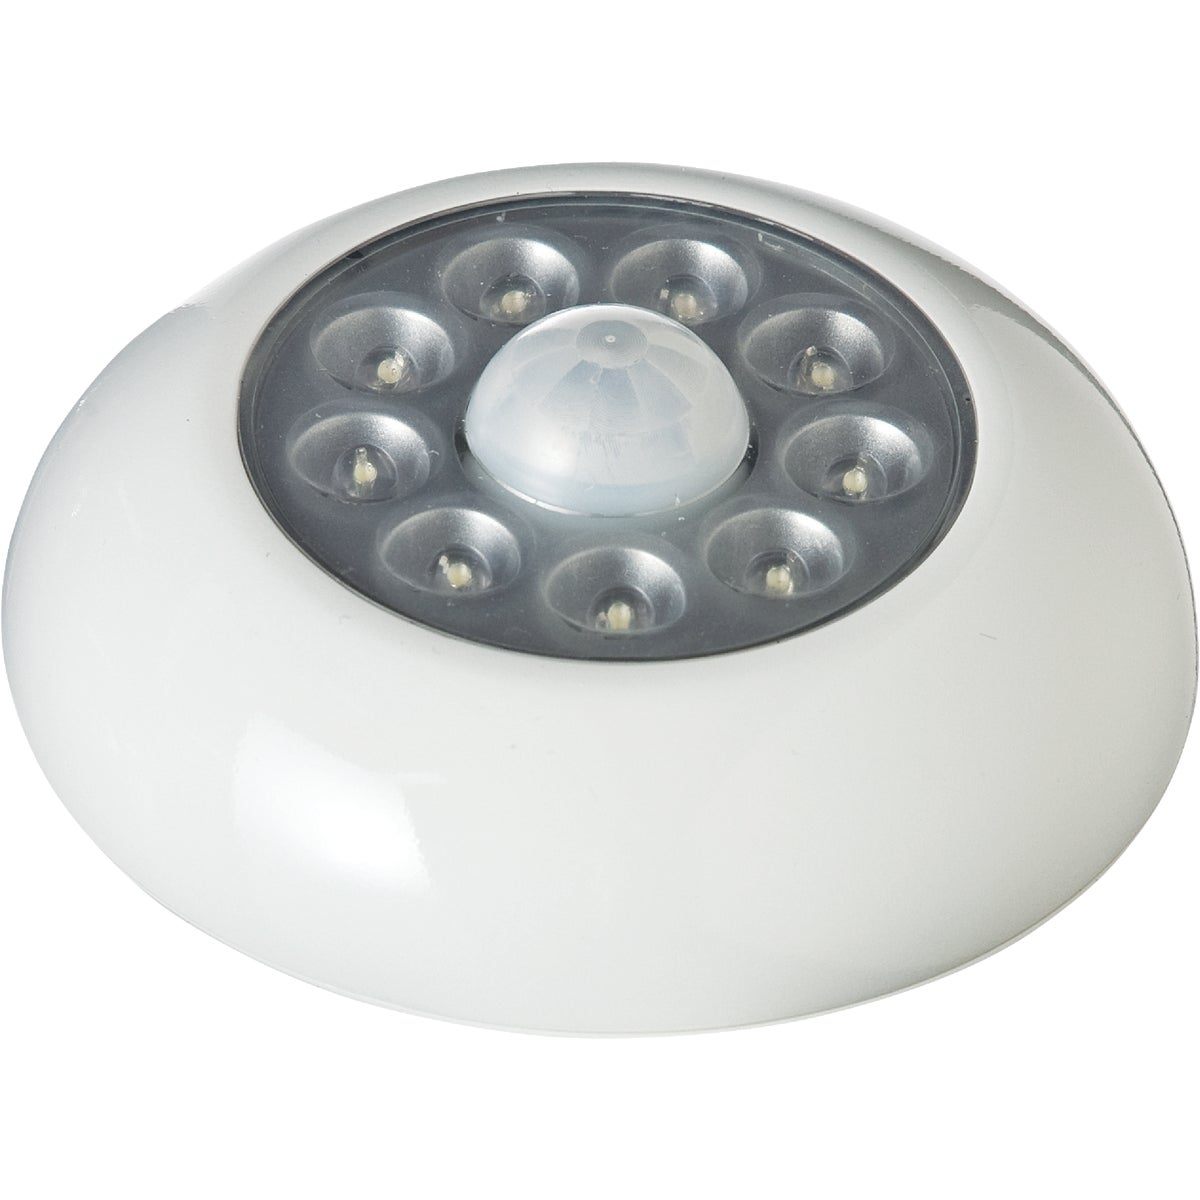 WHITE XB ANYWHERE LIGHT - 30015-308 by Fulcrum Products, Inc